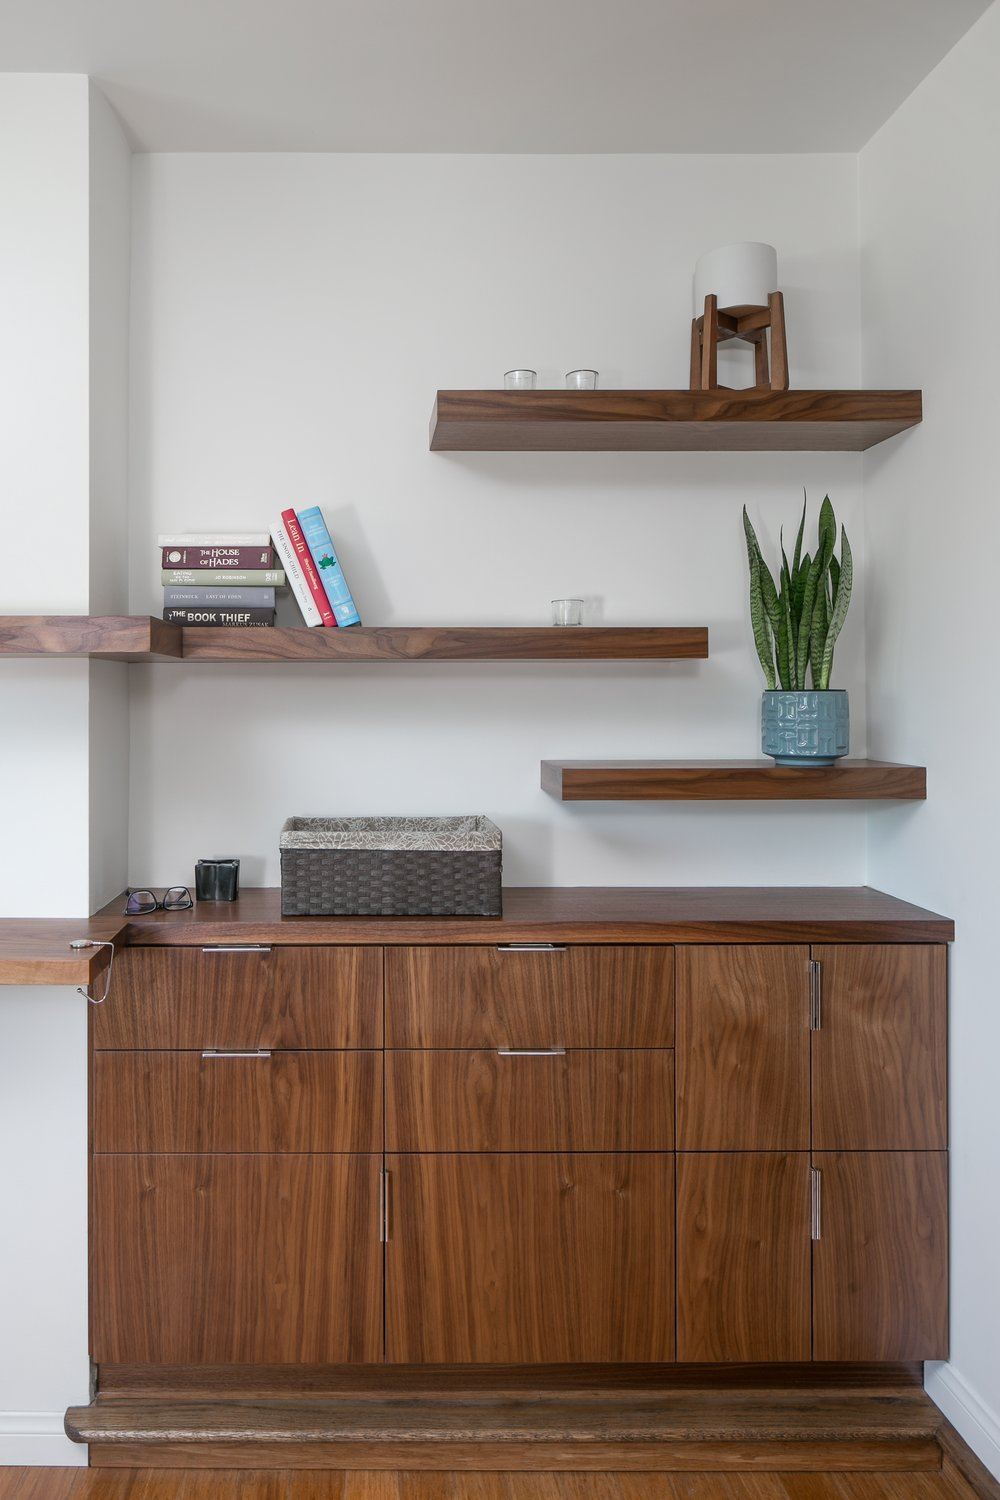 Built-in walnut cabinet and floating shelves